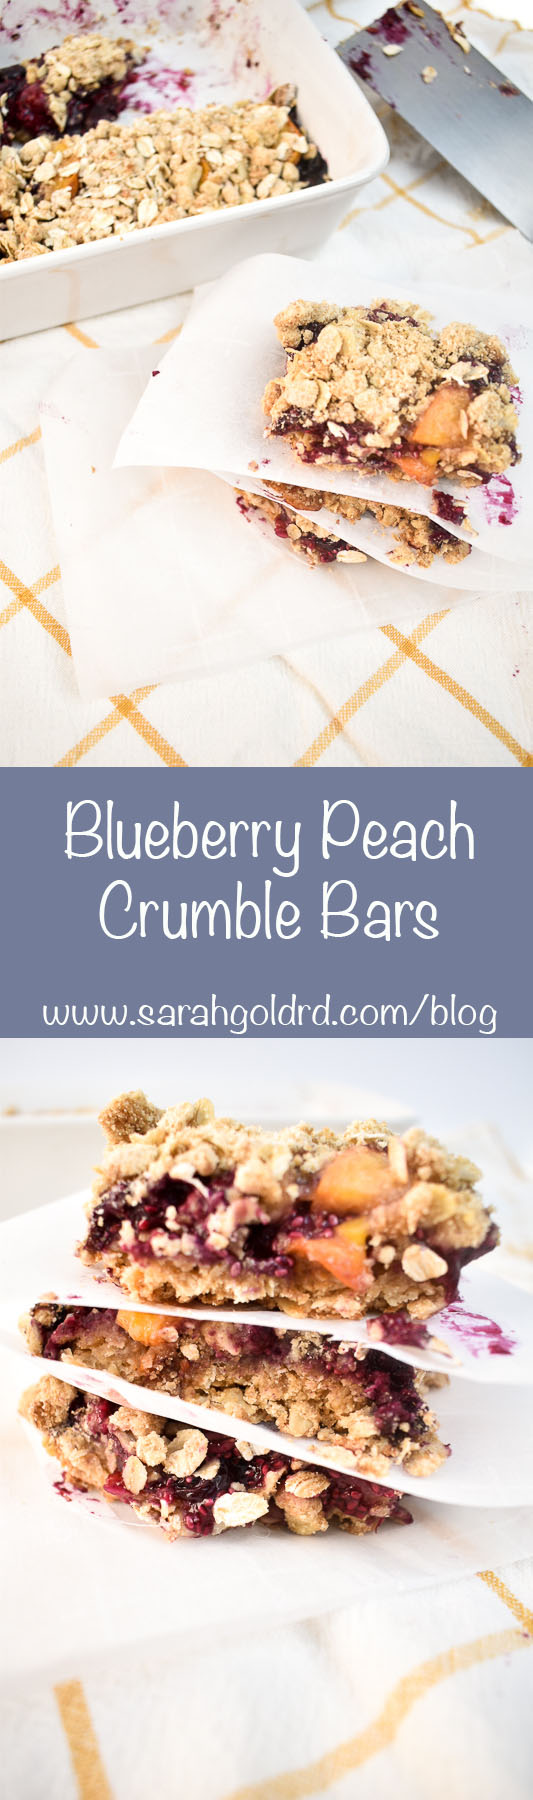 Blueberry Peach Bars Pinterest.jpg